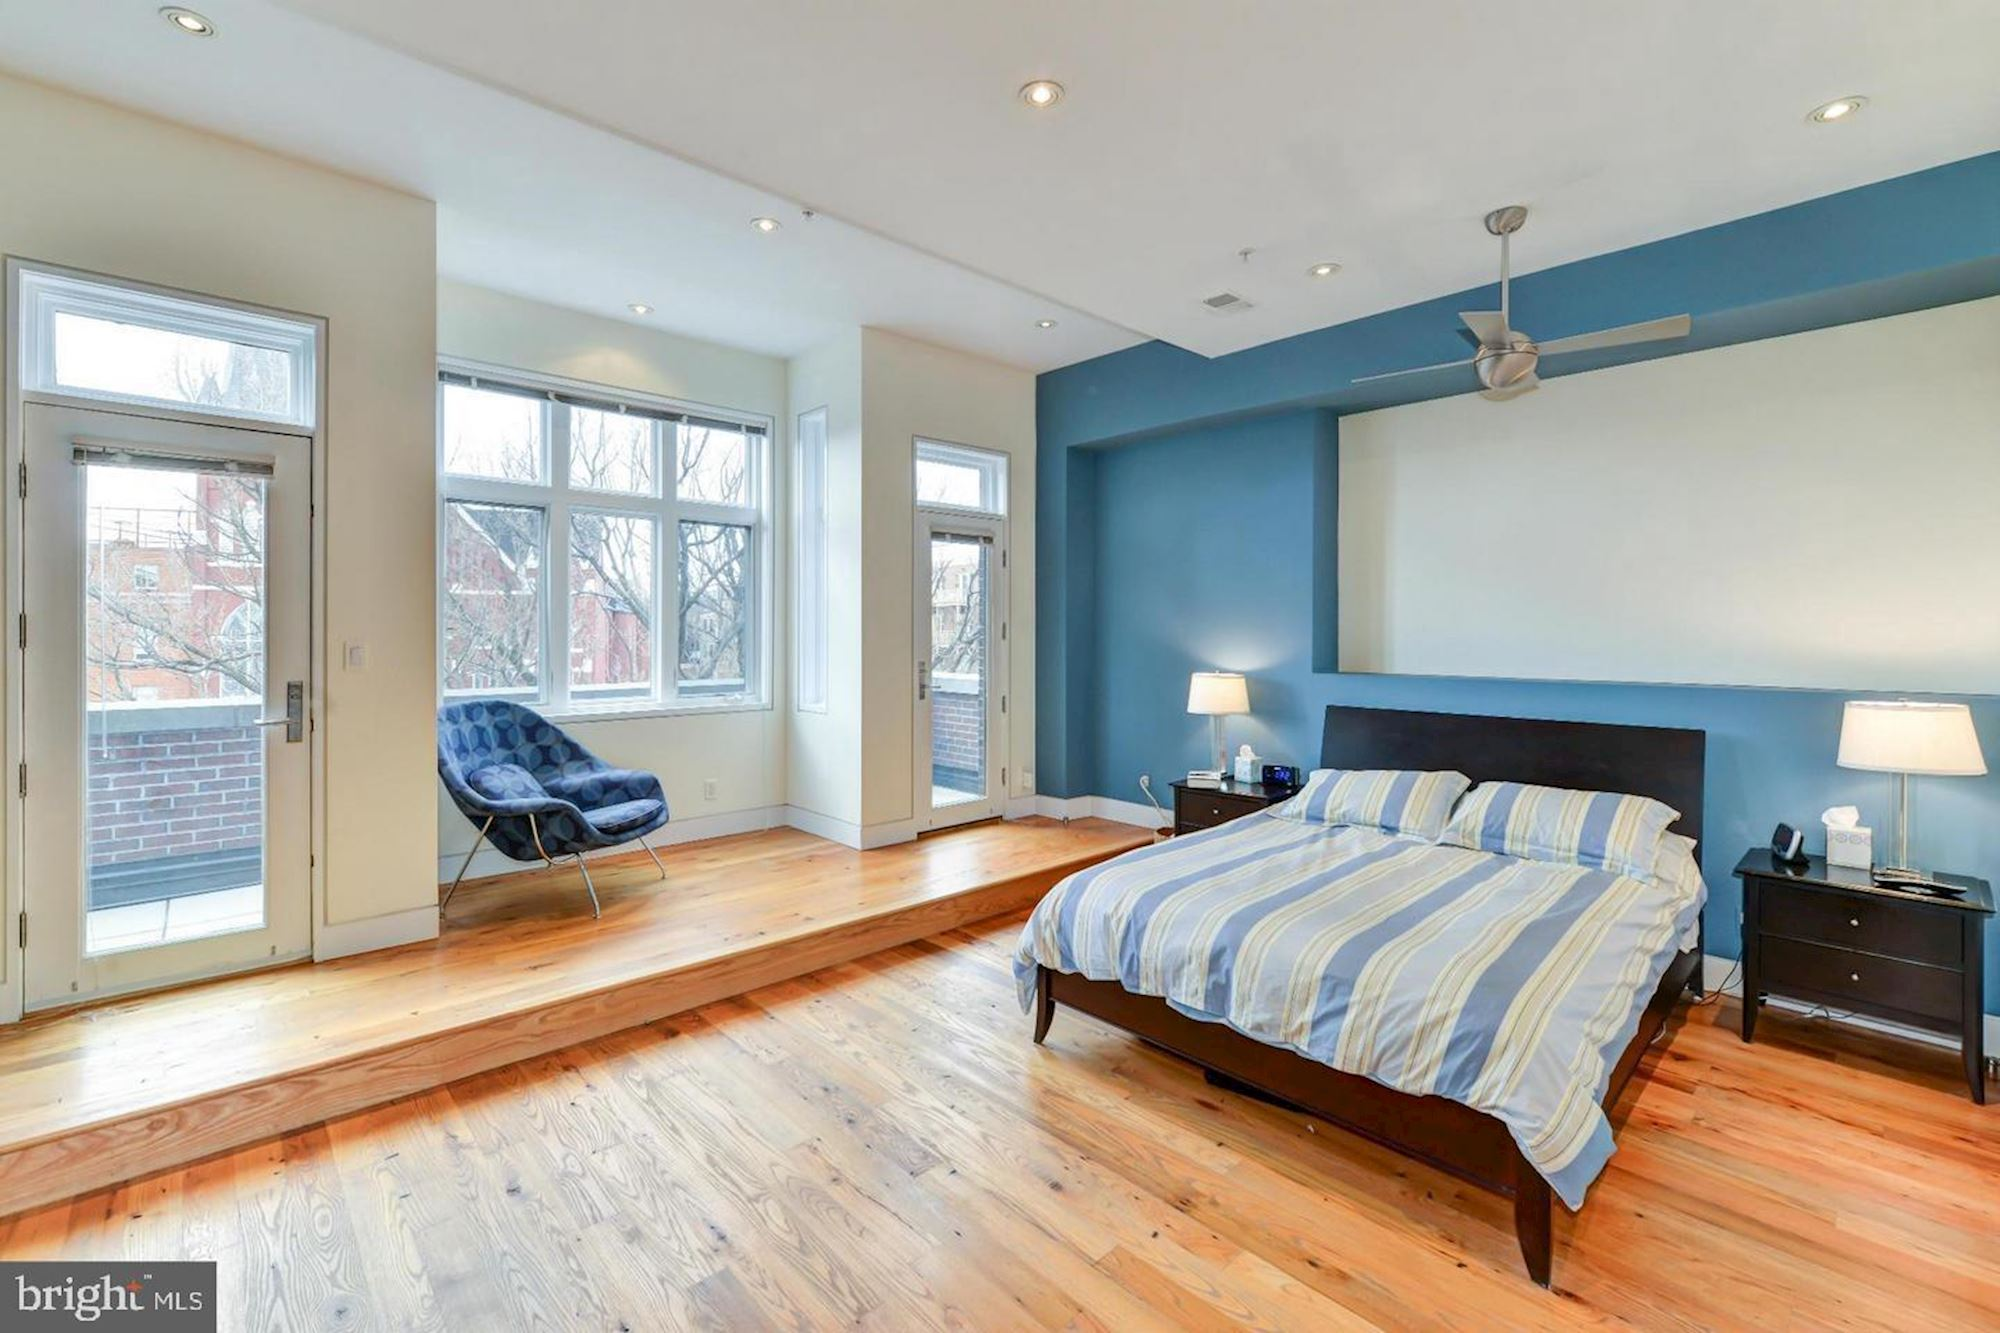 Tips For Making Small Rooms Look Bigger